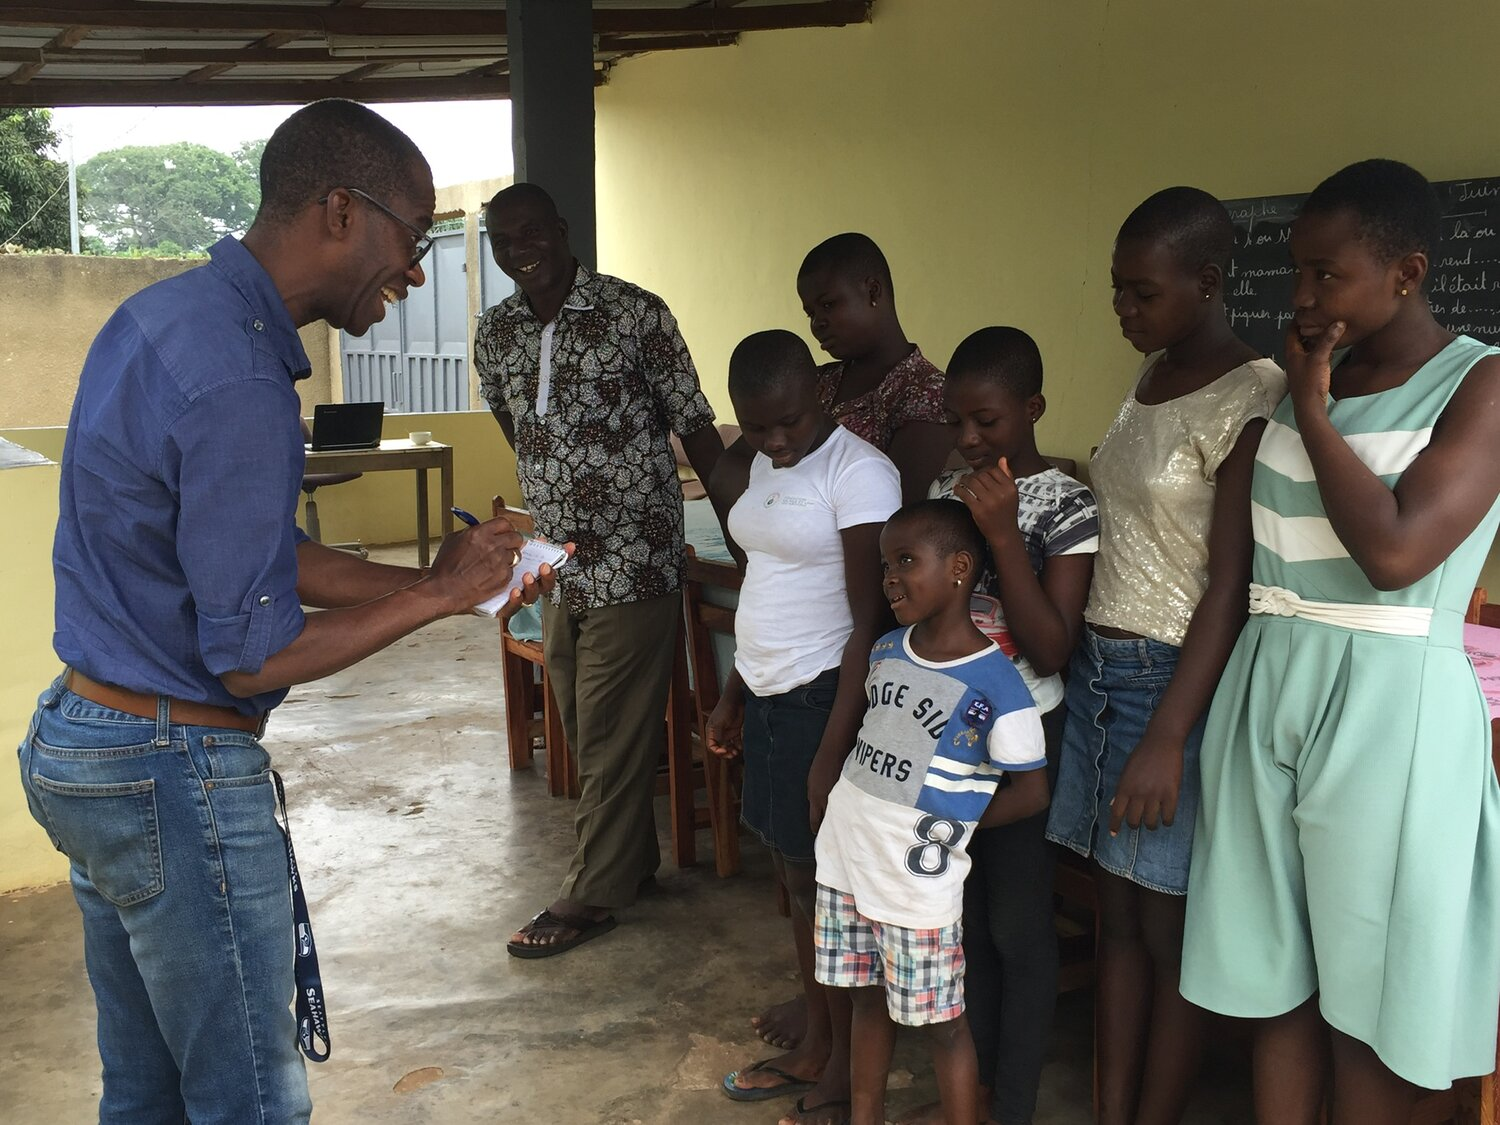 Sekou (left) speaking with some of the children at the orphanage and Father Germaine